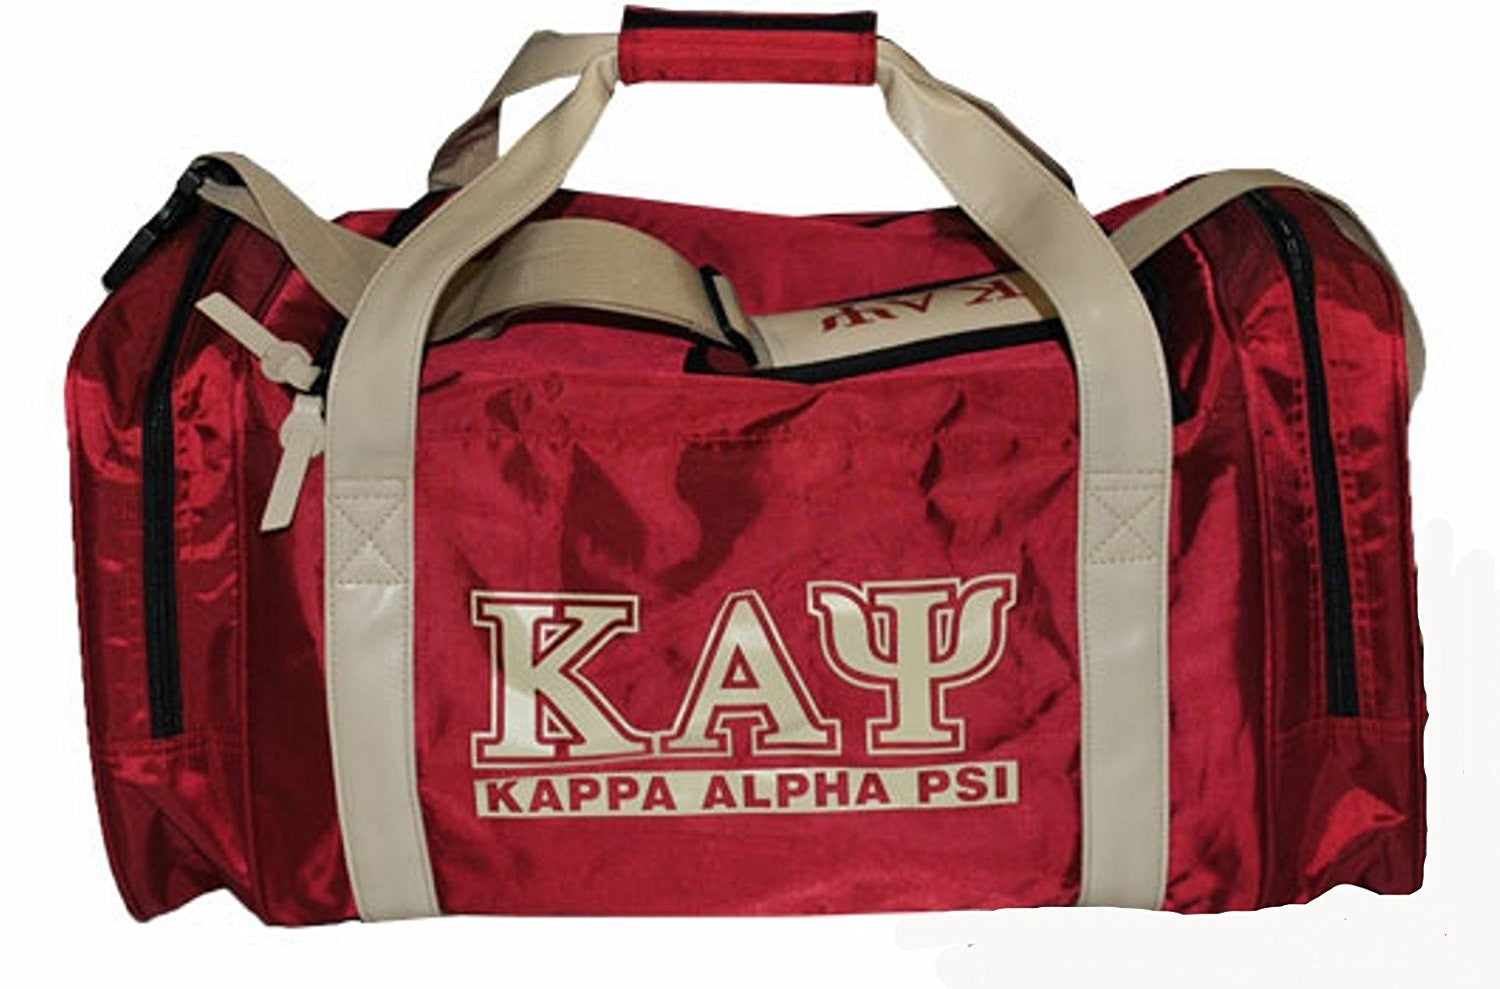 Kappa Alpha Psi 1911 Nupe Duffel Bag by Big Boy Headgear